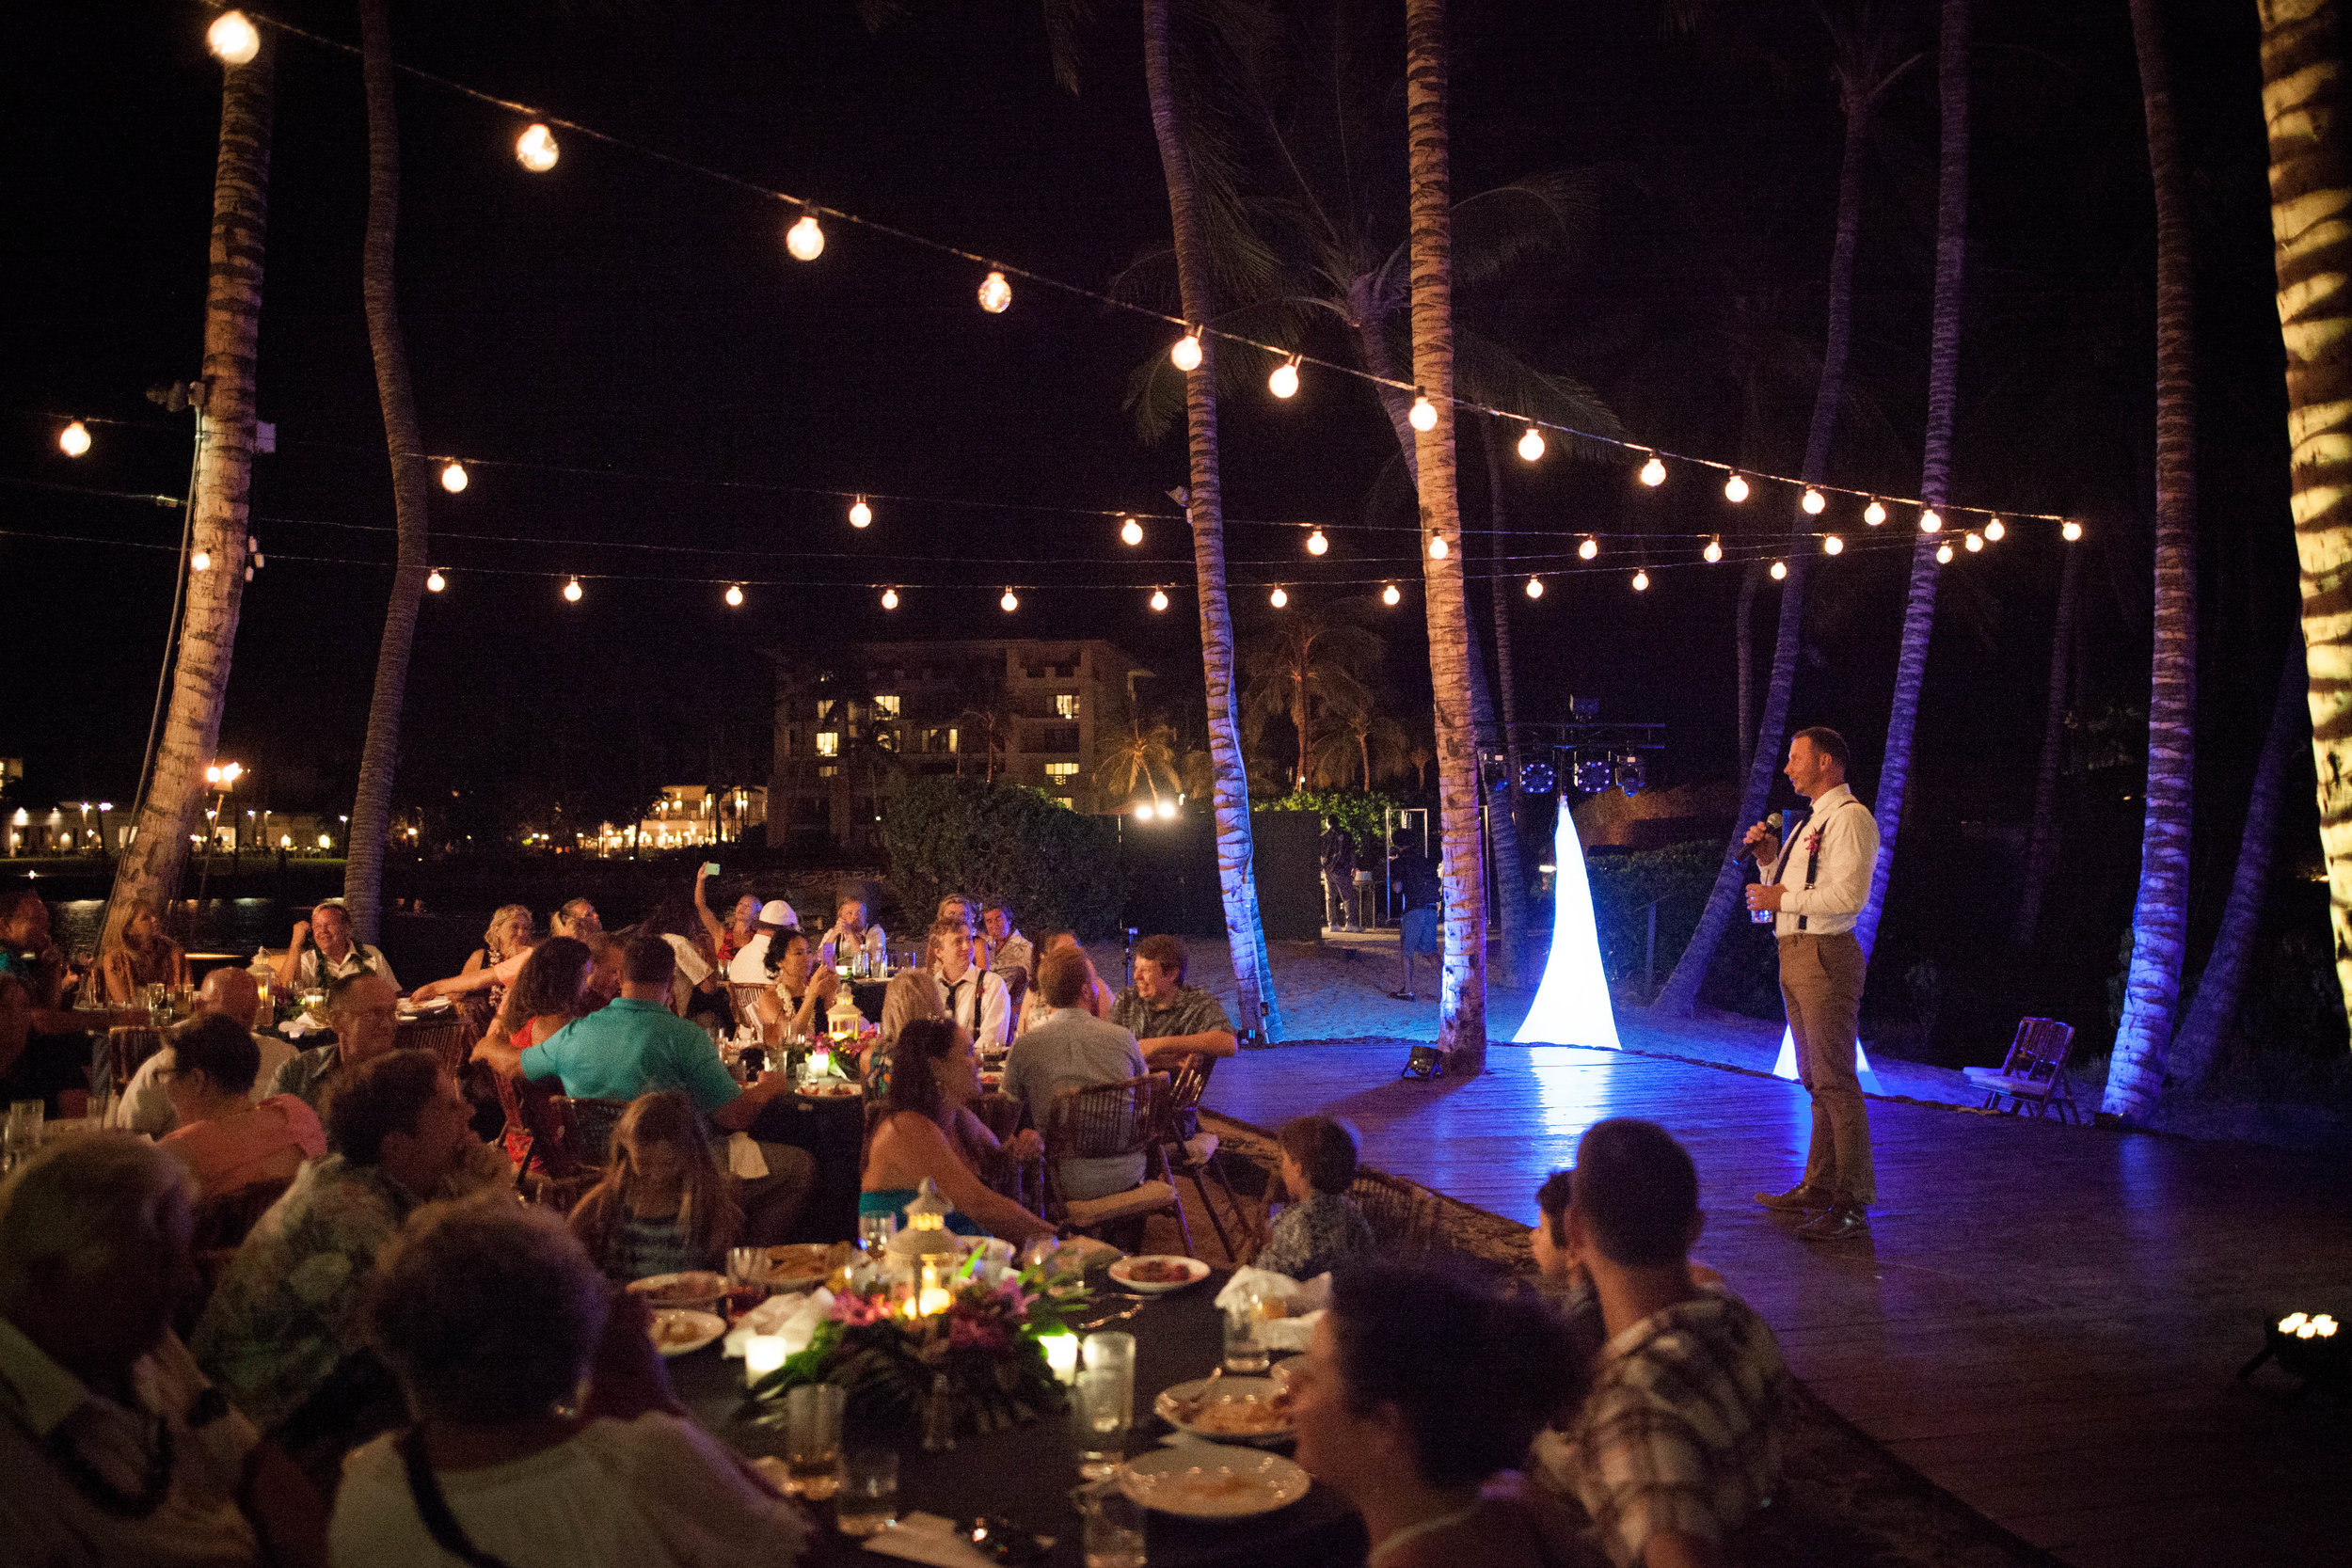 big island hawaii fairmont orchid beach wedding © kelilina photography 20170812203428-1.jpg